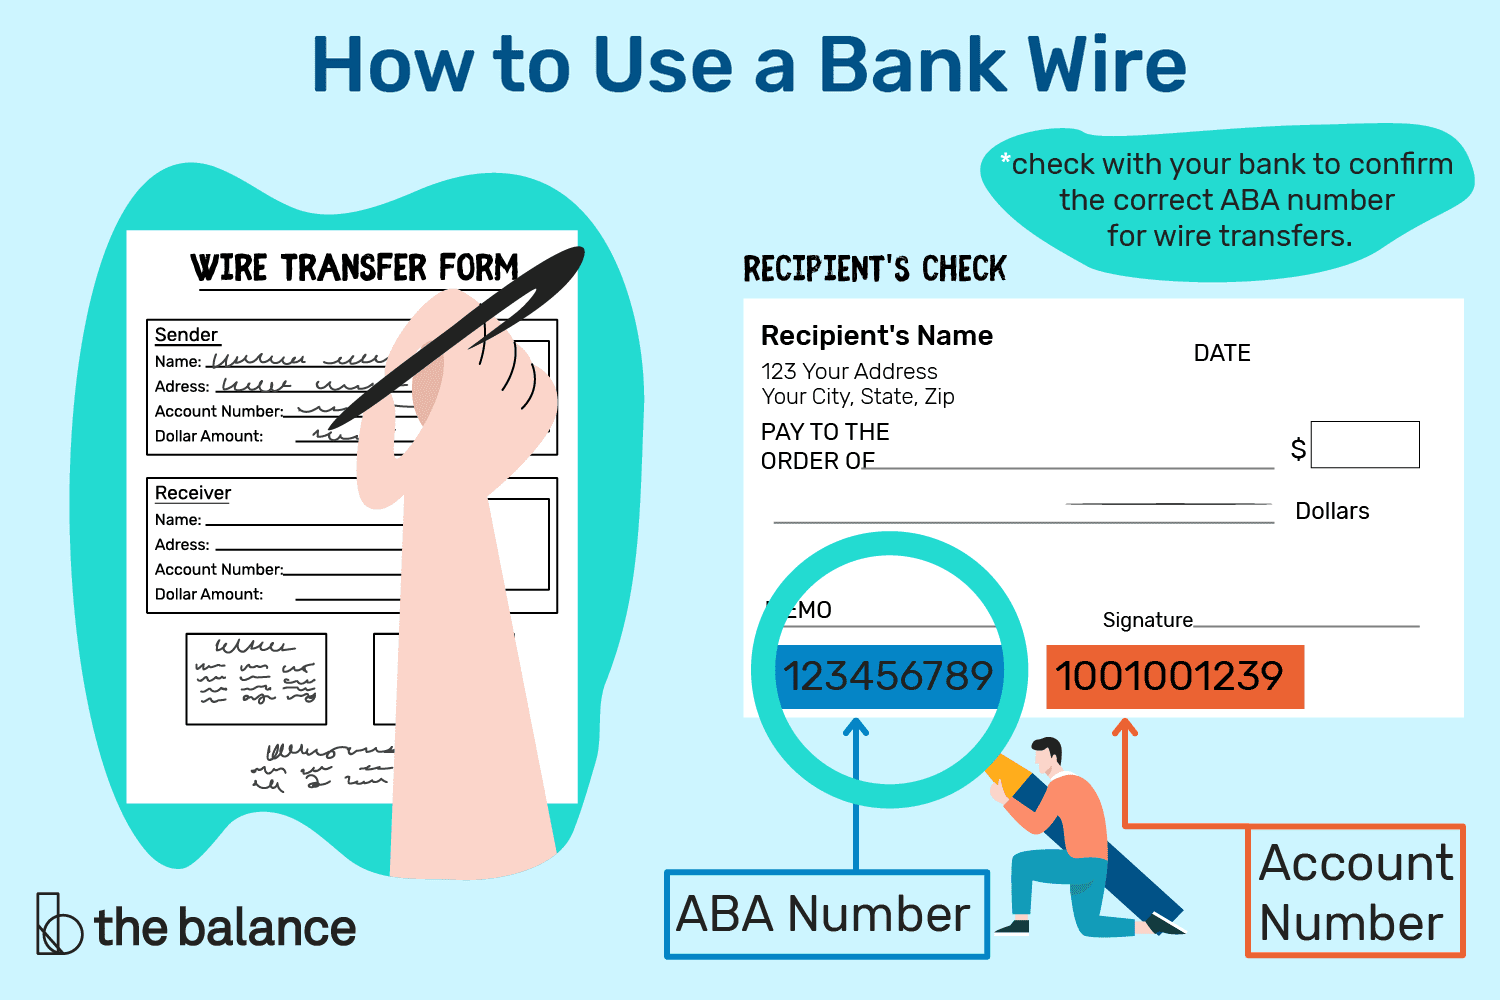 Bank Wires: How to Send or Receive Funds